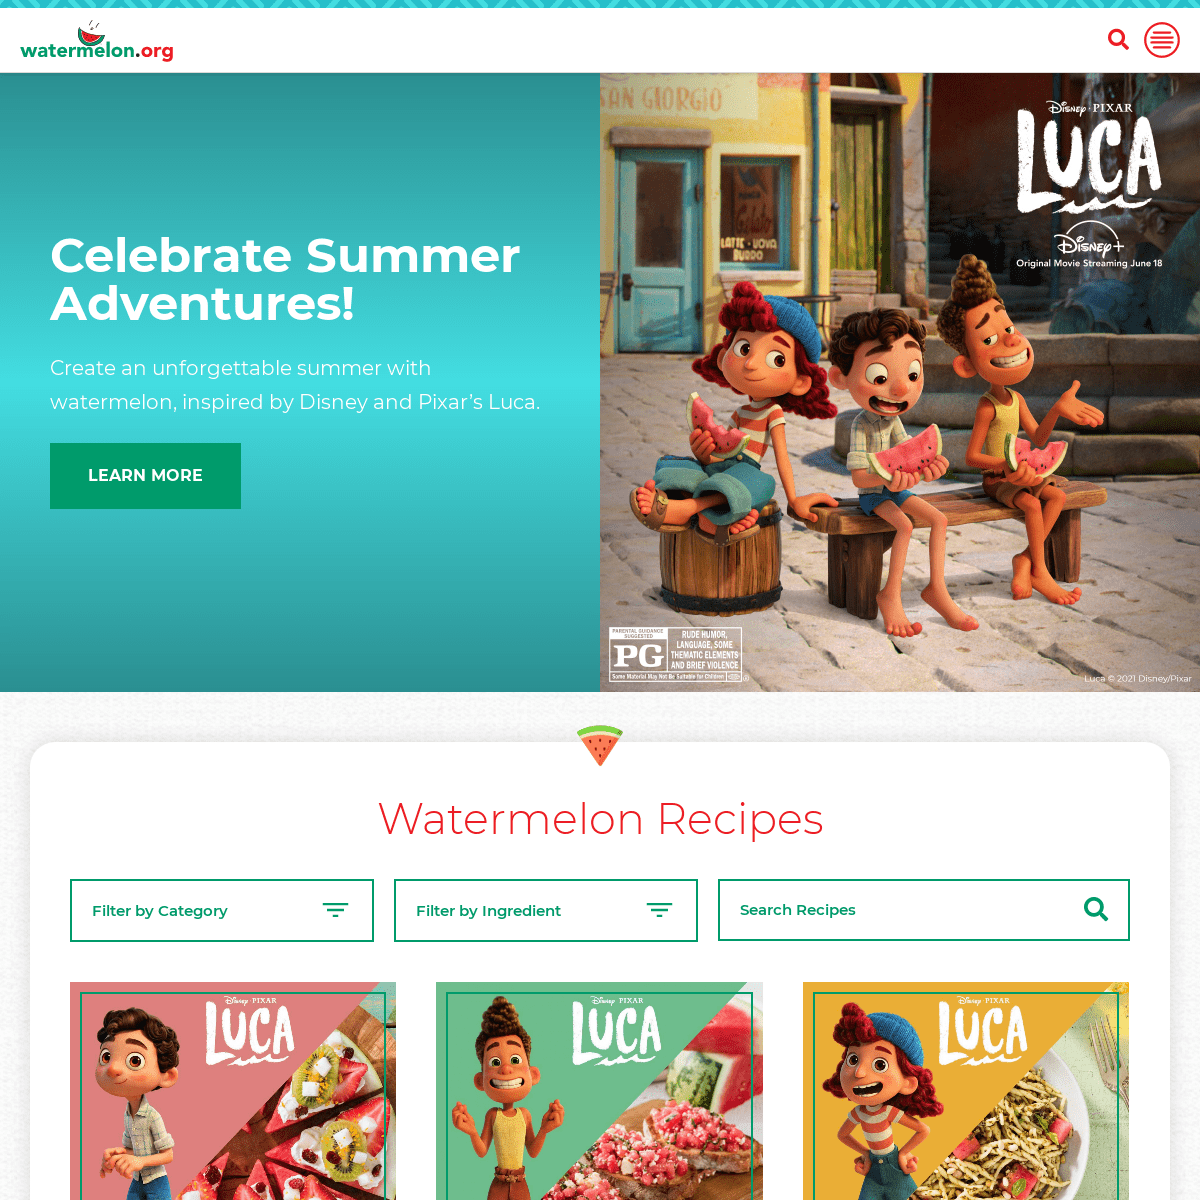 Welcome to Watermelon.org